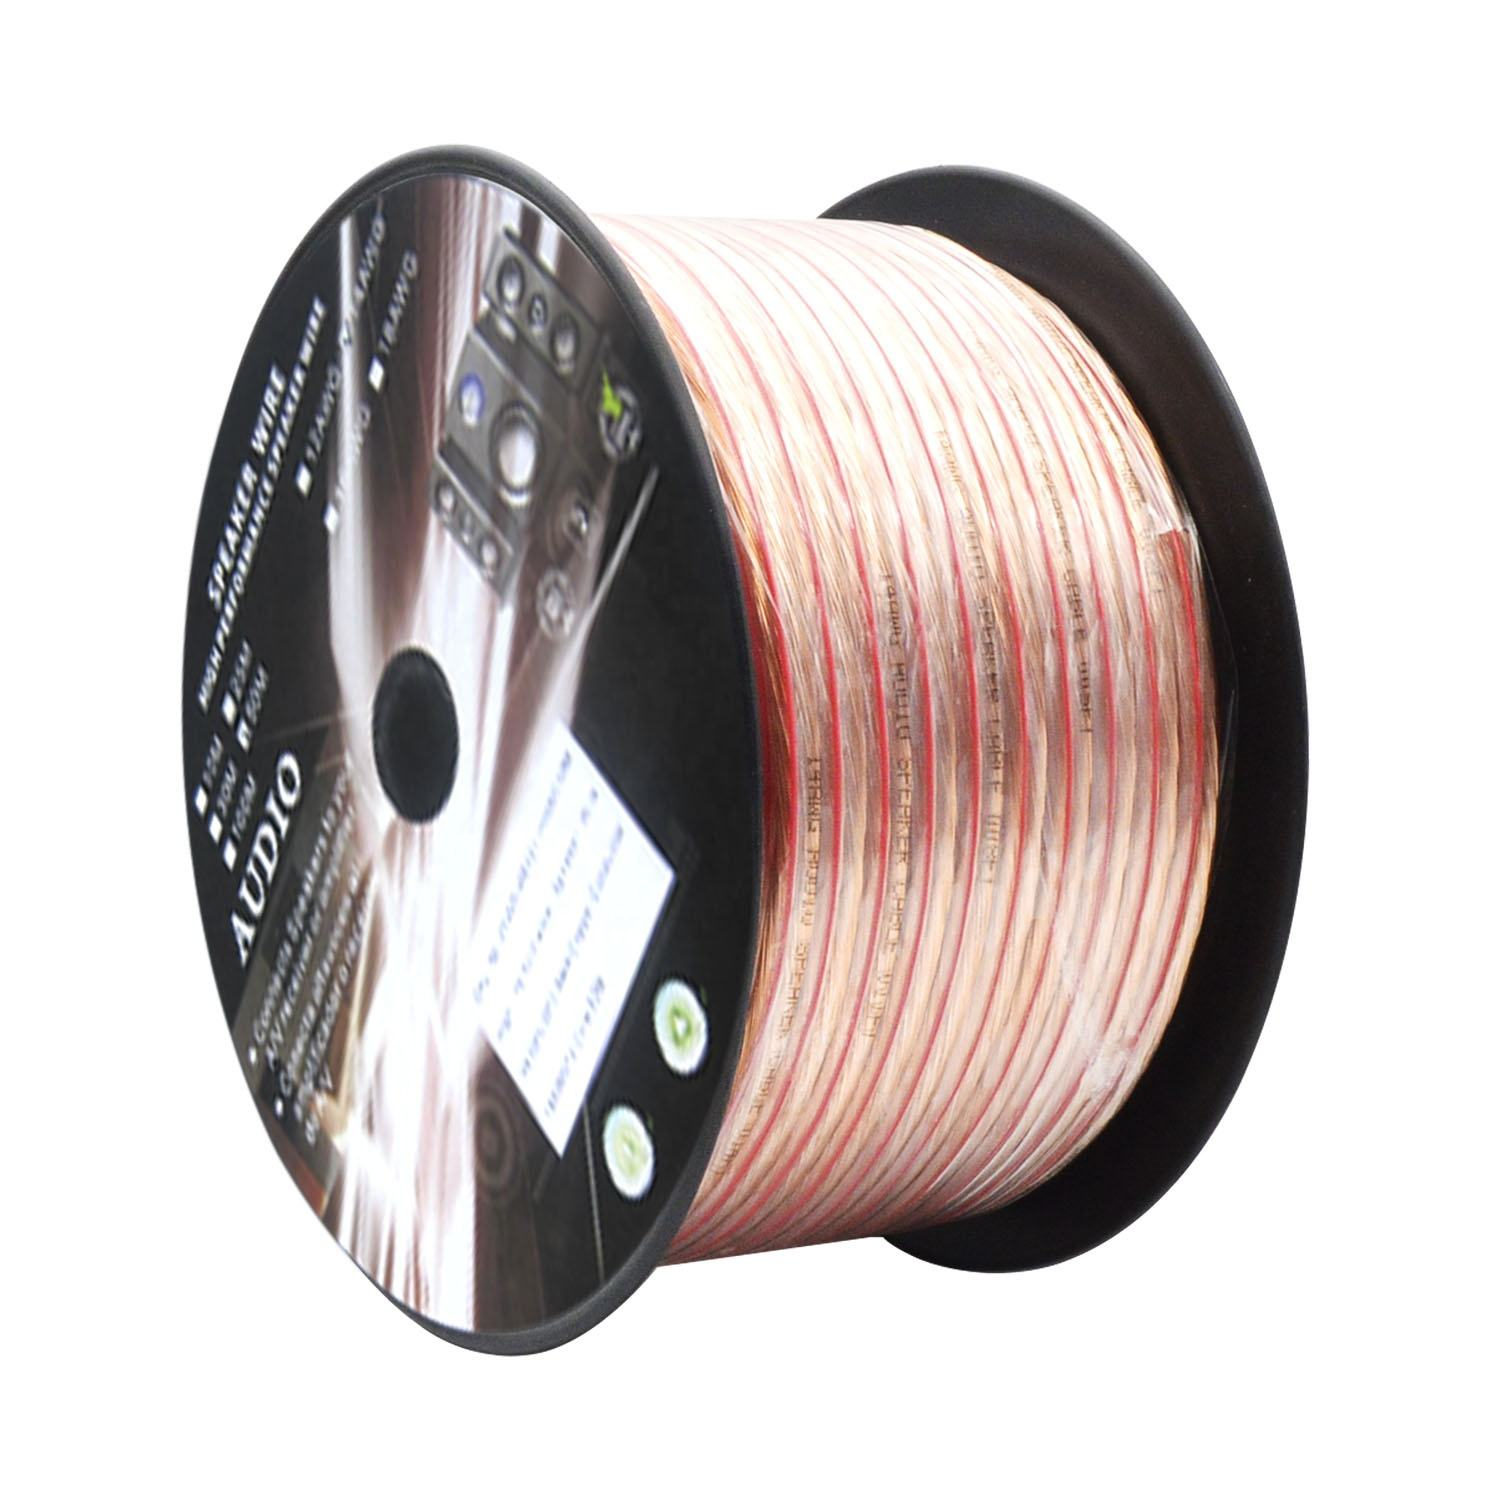 16 AWG 100FT Speaker Wire Cable for In-wall Installation